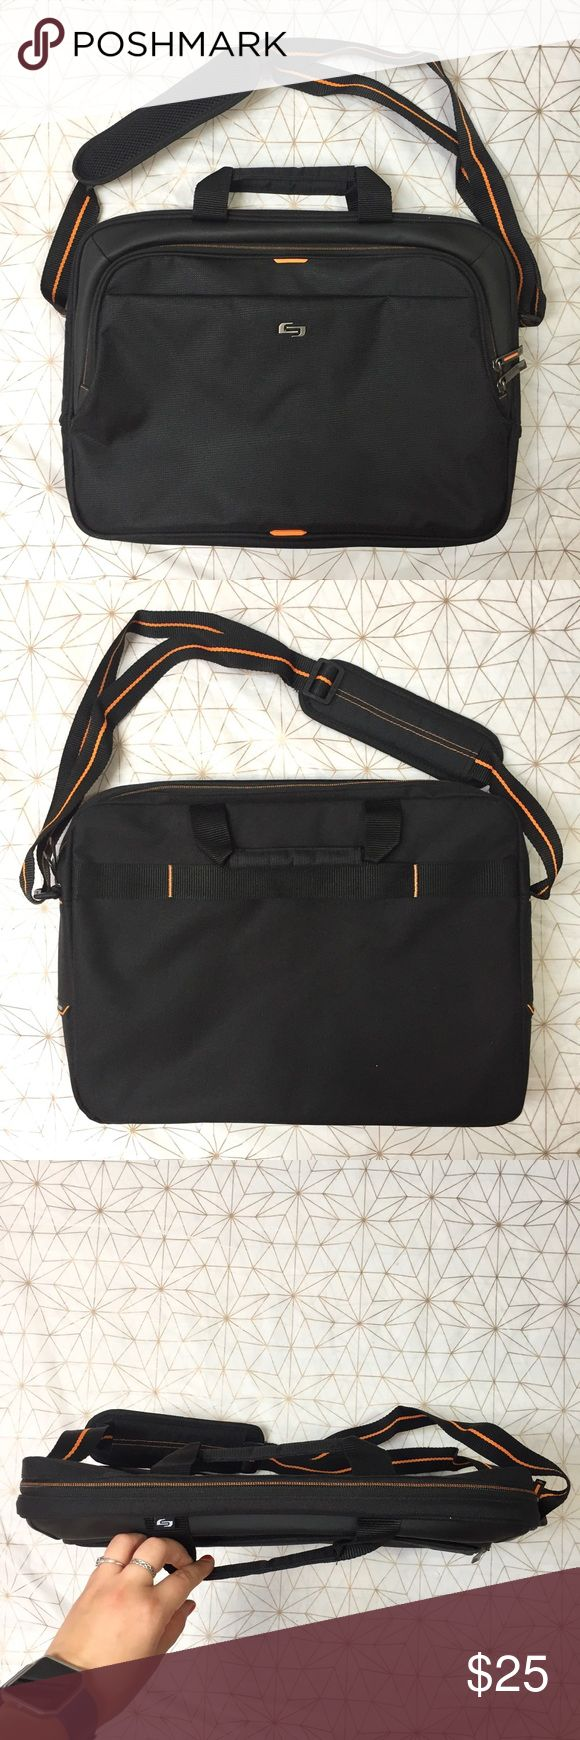 """EUC Solo black and orange laptop bag - Material: N/A - Condition: perfect - Color: black and orange - Pockets: yes - Lined: yes - Closure: zippers - Style: laptop bag - Extra notes:   *Measurements:  Length: 18"""" Width: 13"""" Shoulder drop: adjustable to be longer or shorter Solo Bags Laptop Bags"""